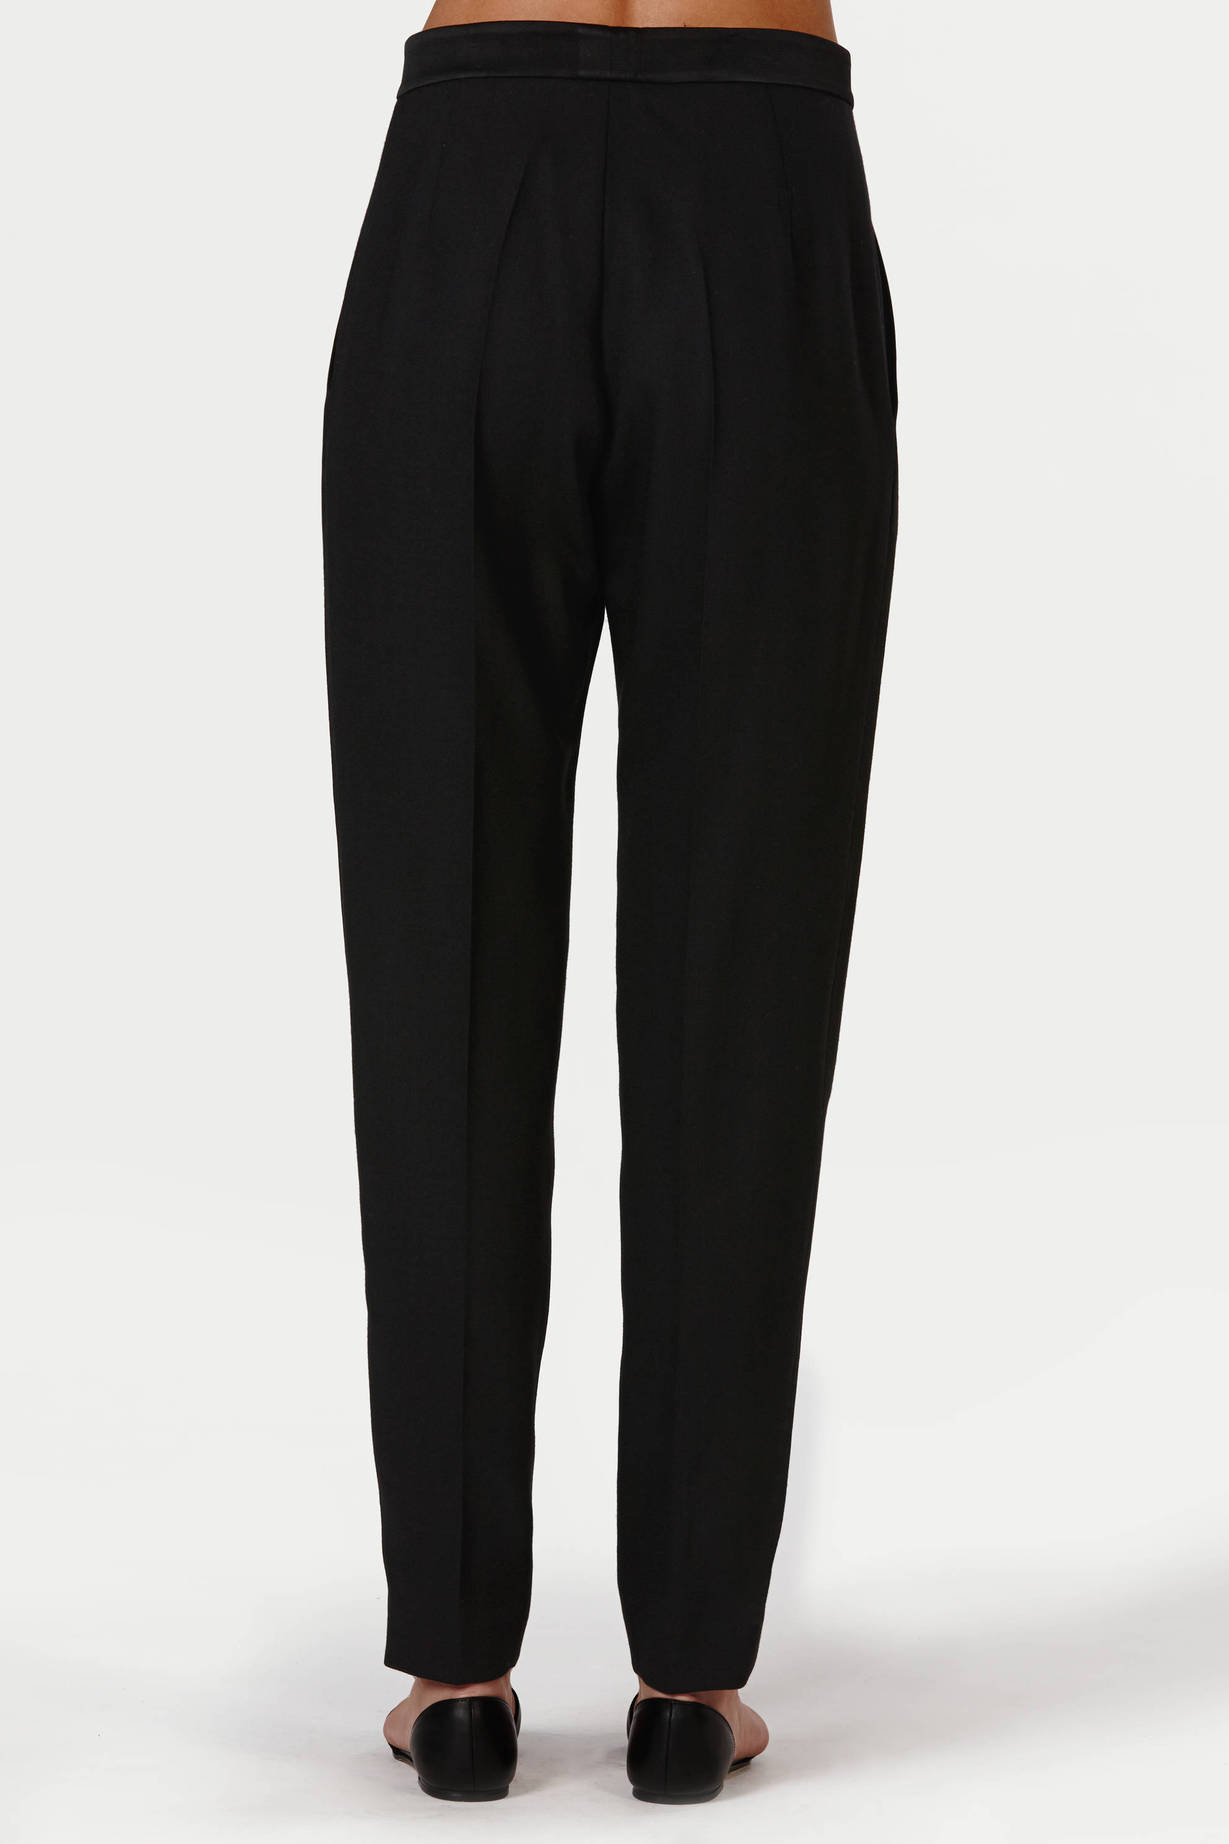 Pallas — Lambda Trousers — THE LINE